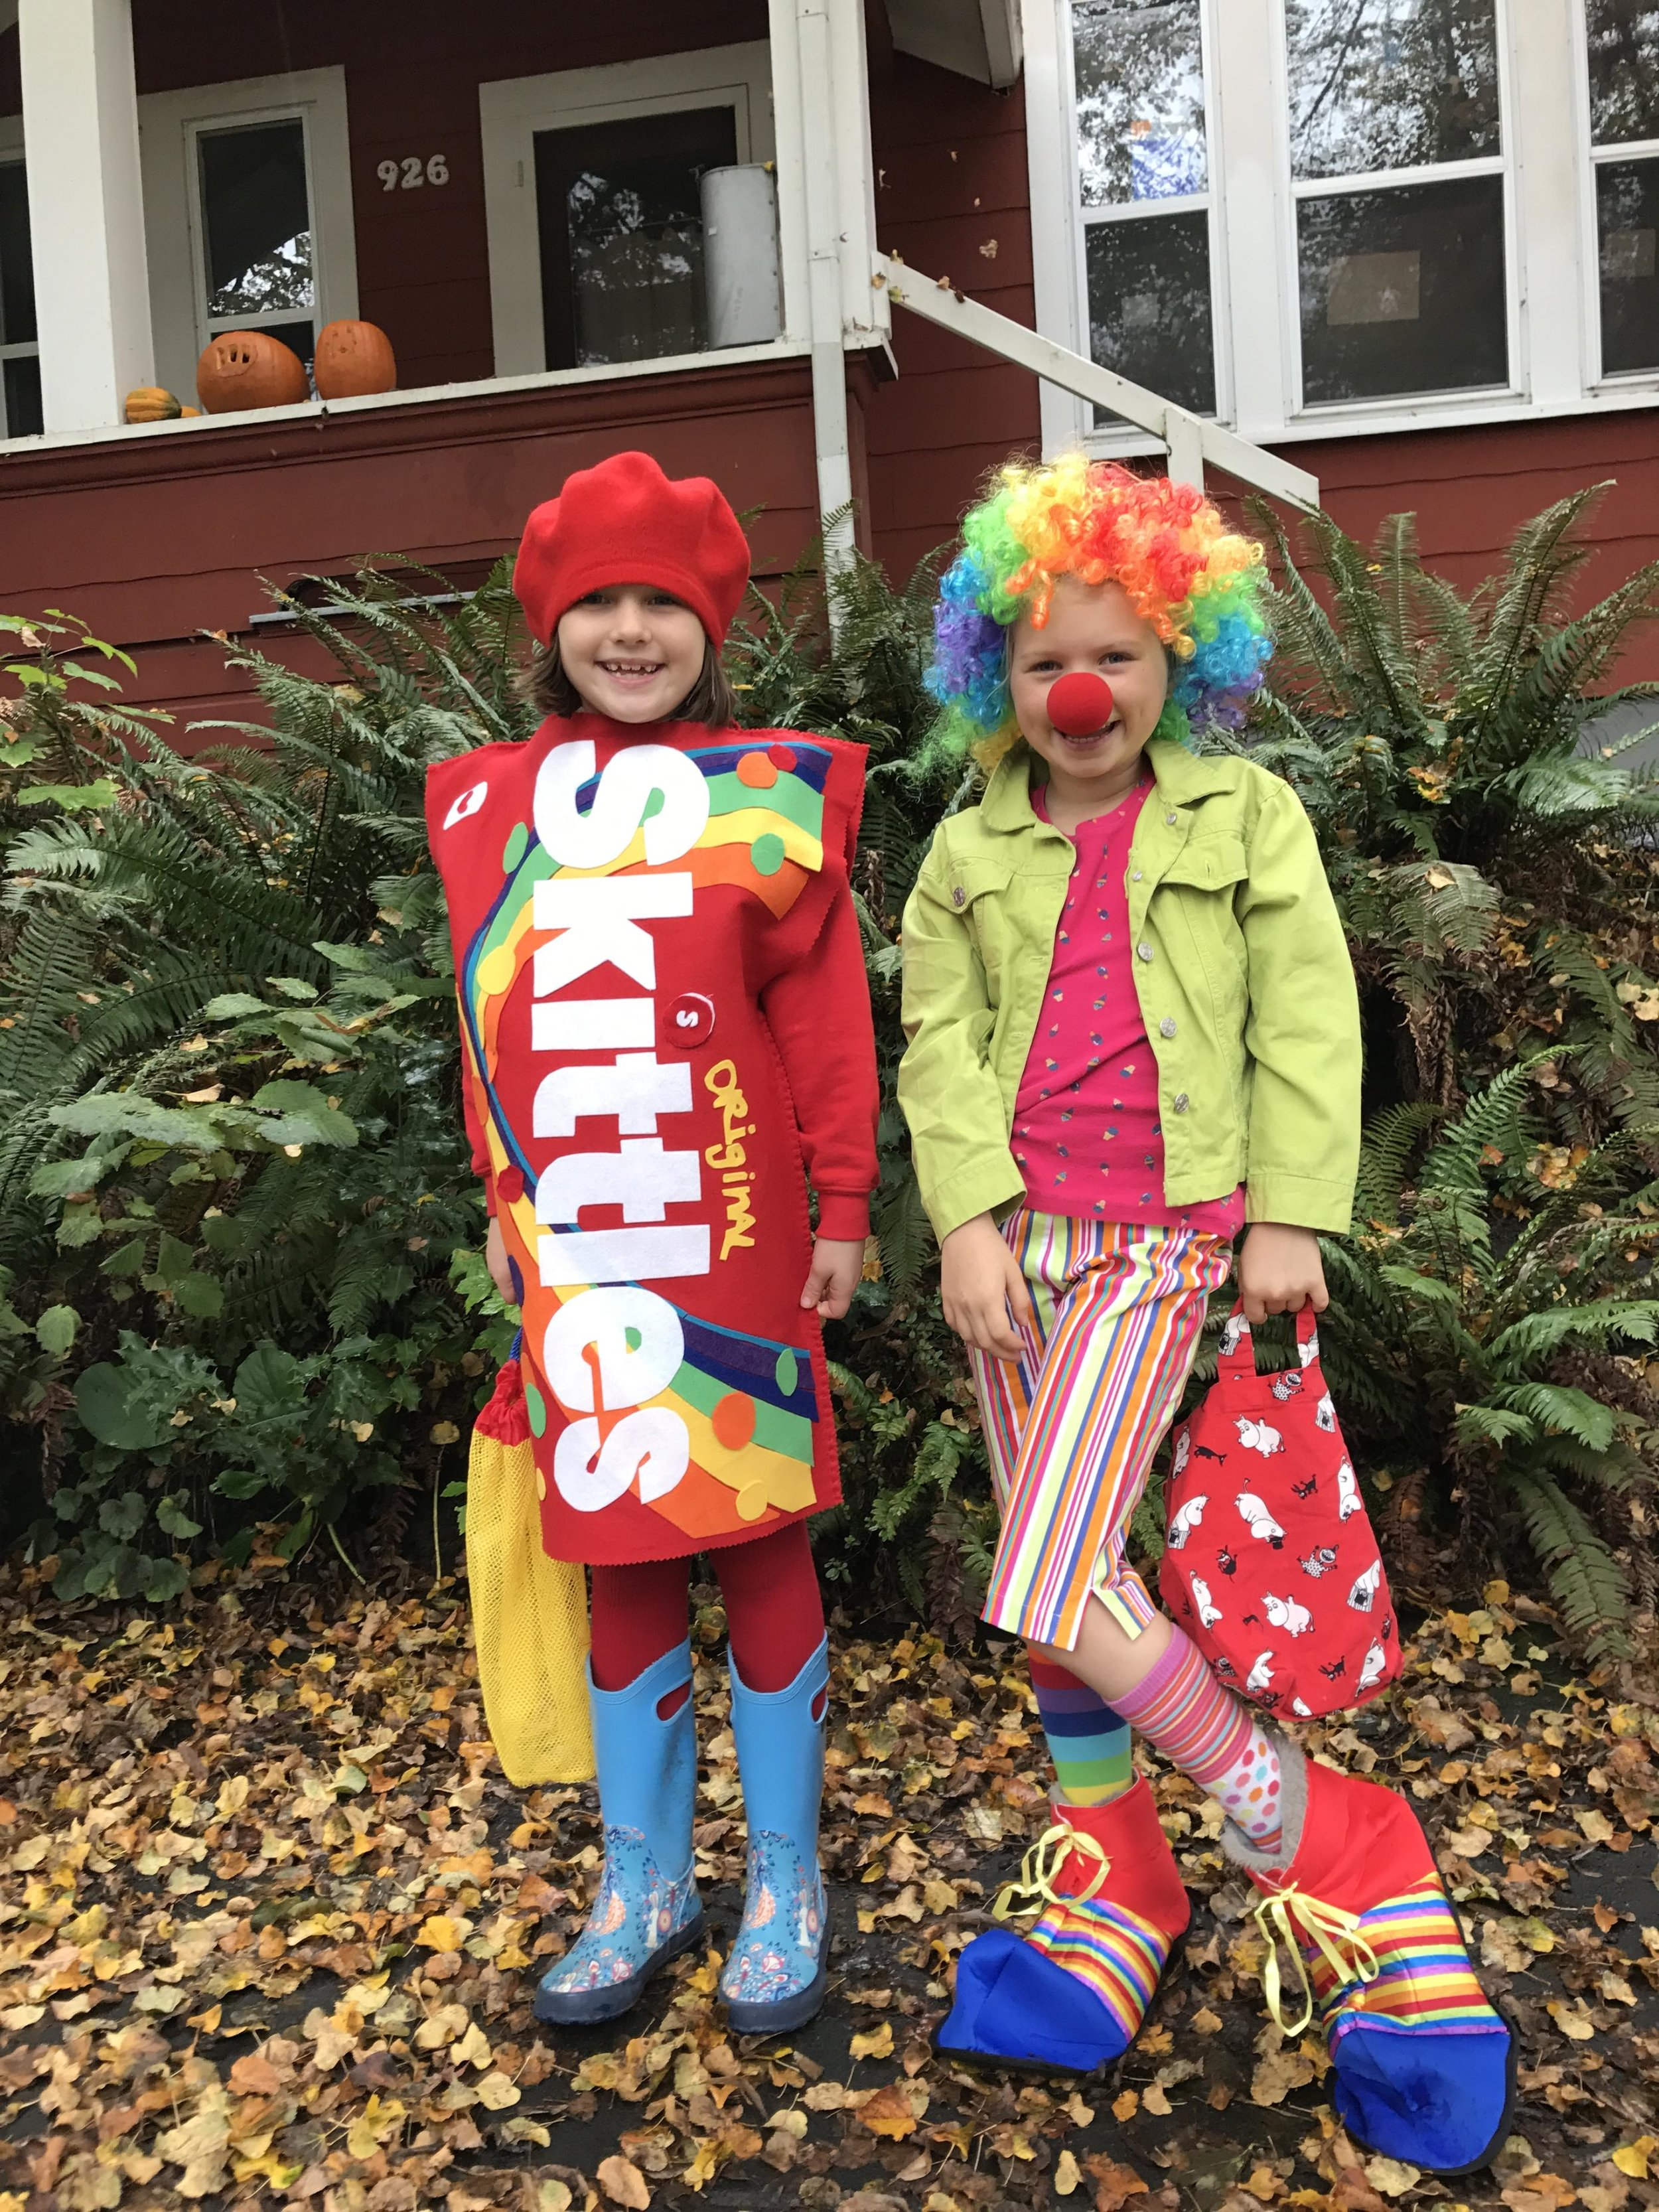 Photo by Jenelle Isaacson featuring her daughters Siiri and Tuula in their Halloween costumes